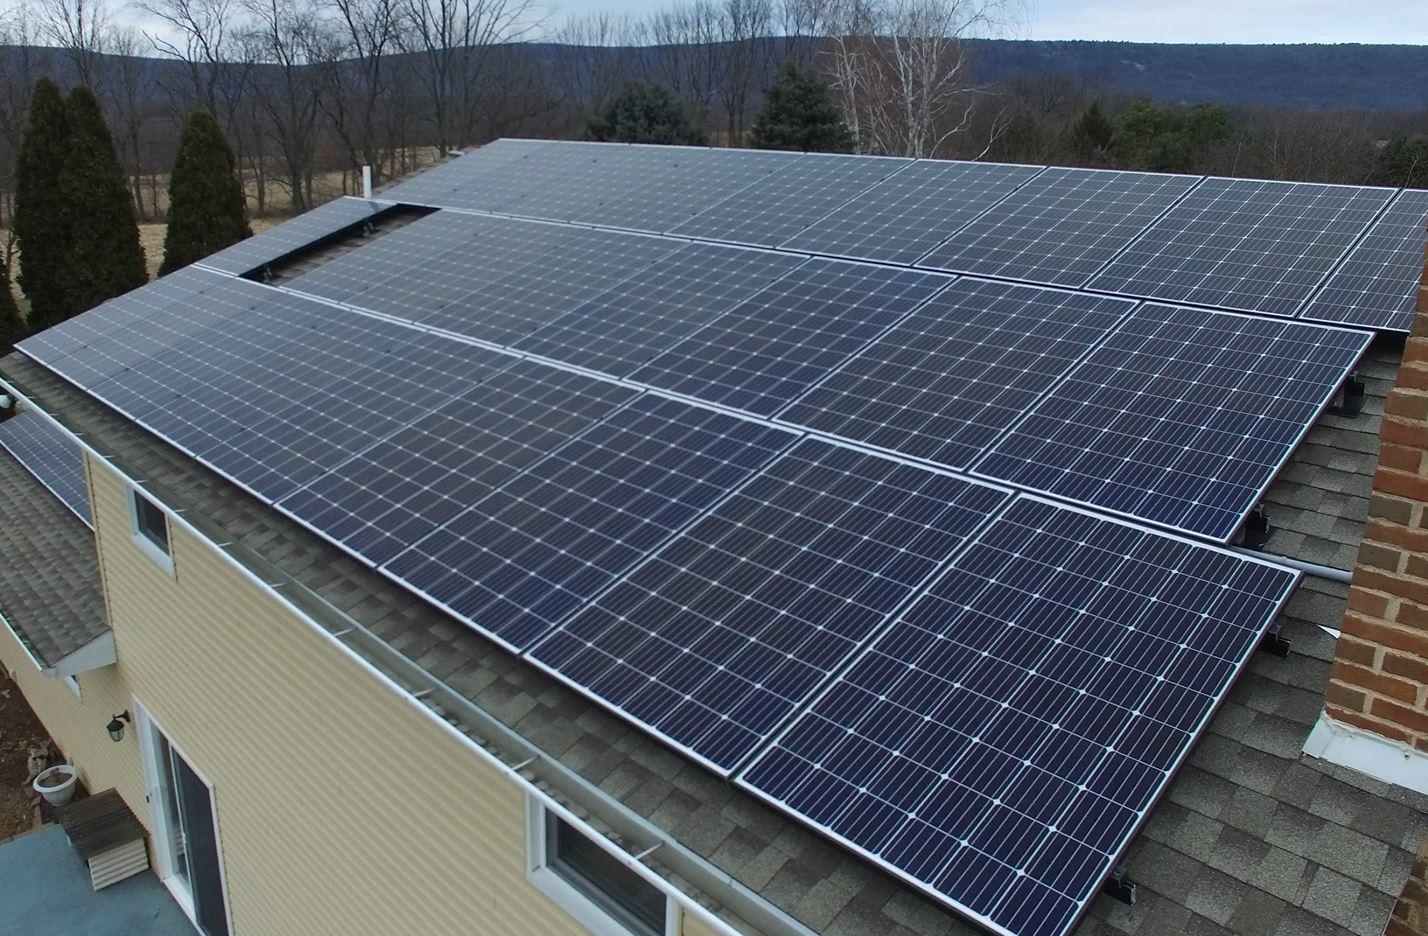 Call Pinnacle Exteriors For All Your PV Solar Needs in Pennsylvania and New Jersey